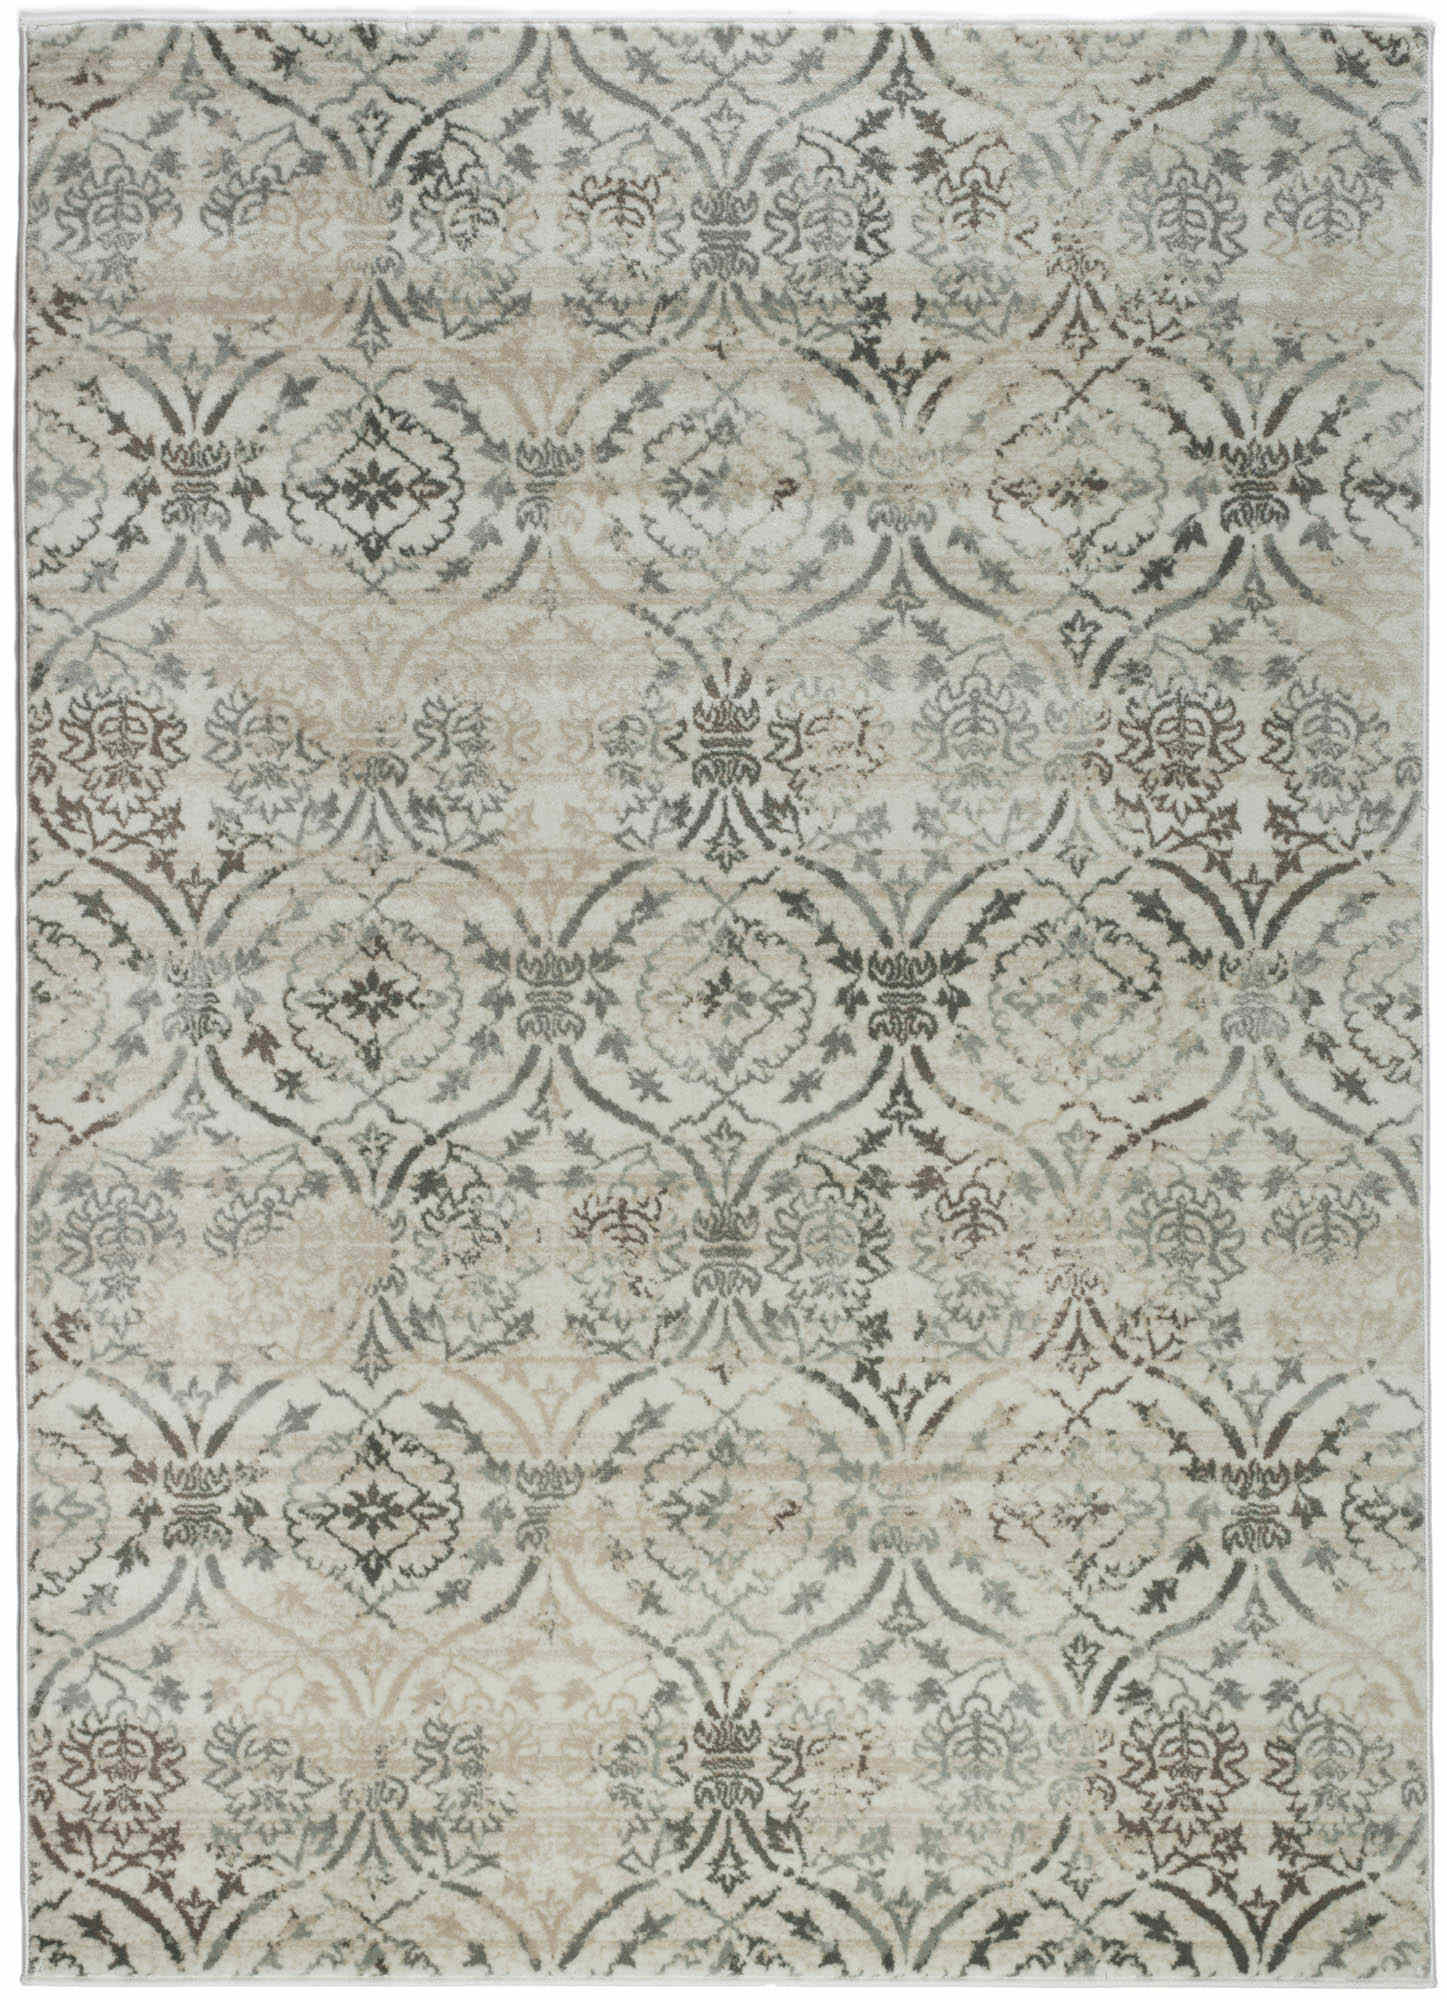 Radici Usa Pisa 3746 Ivory Transitional  Area Rug